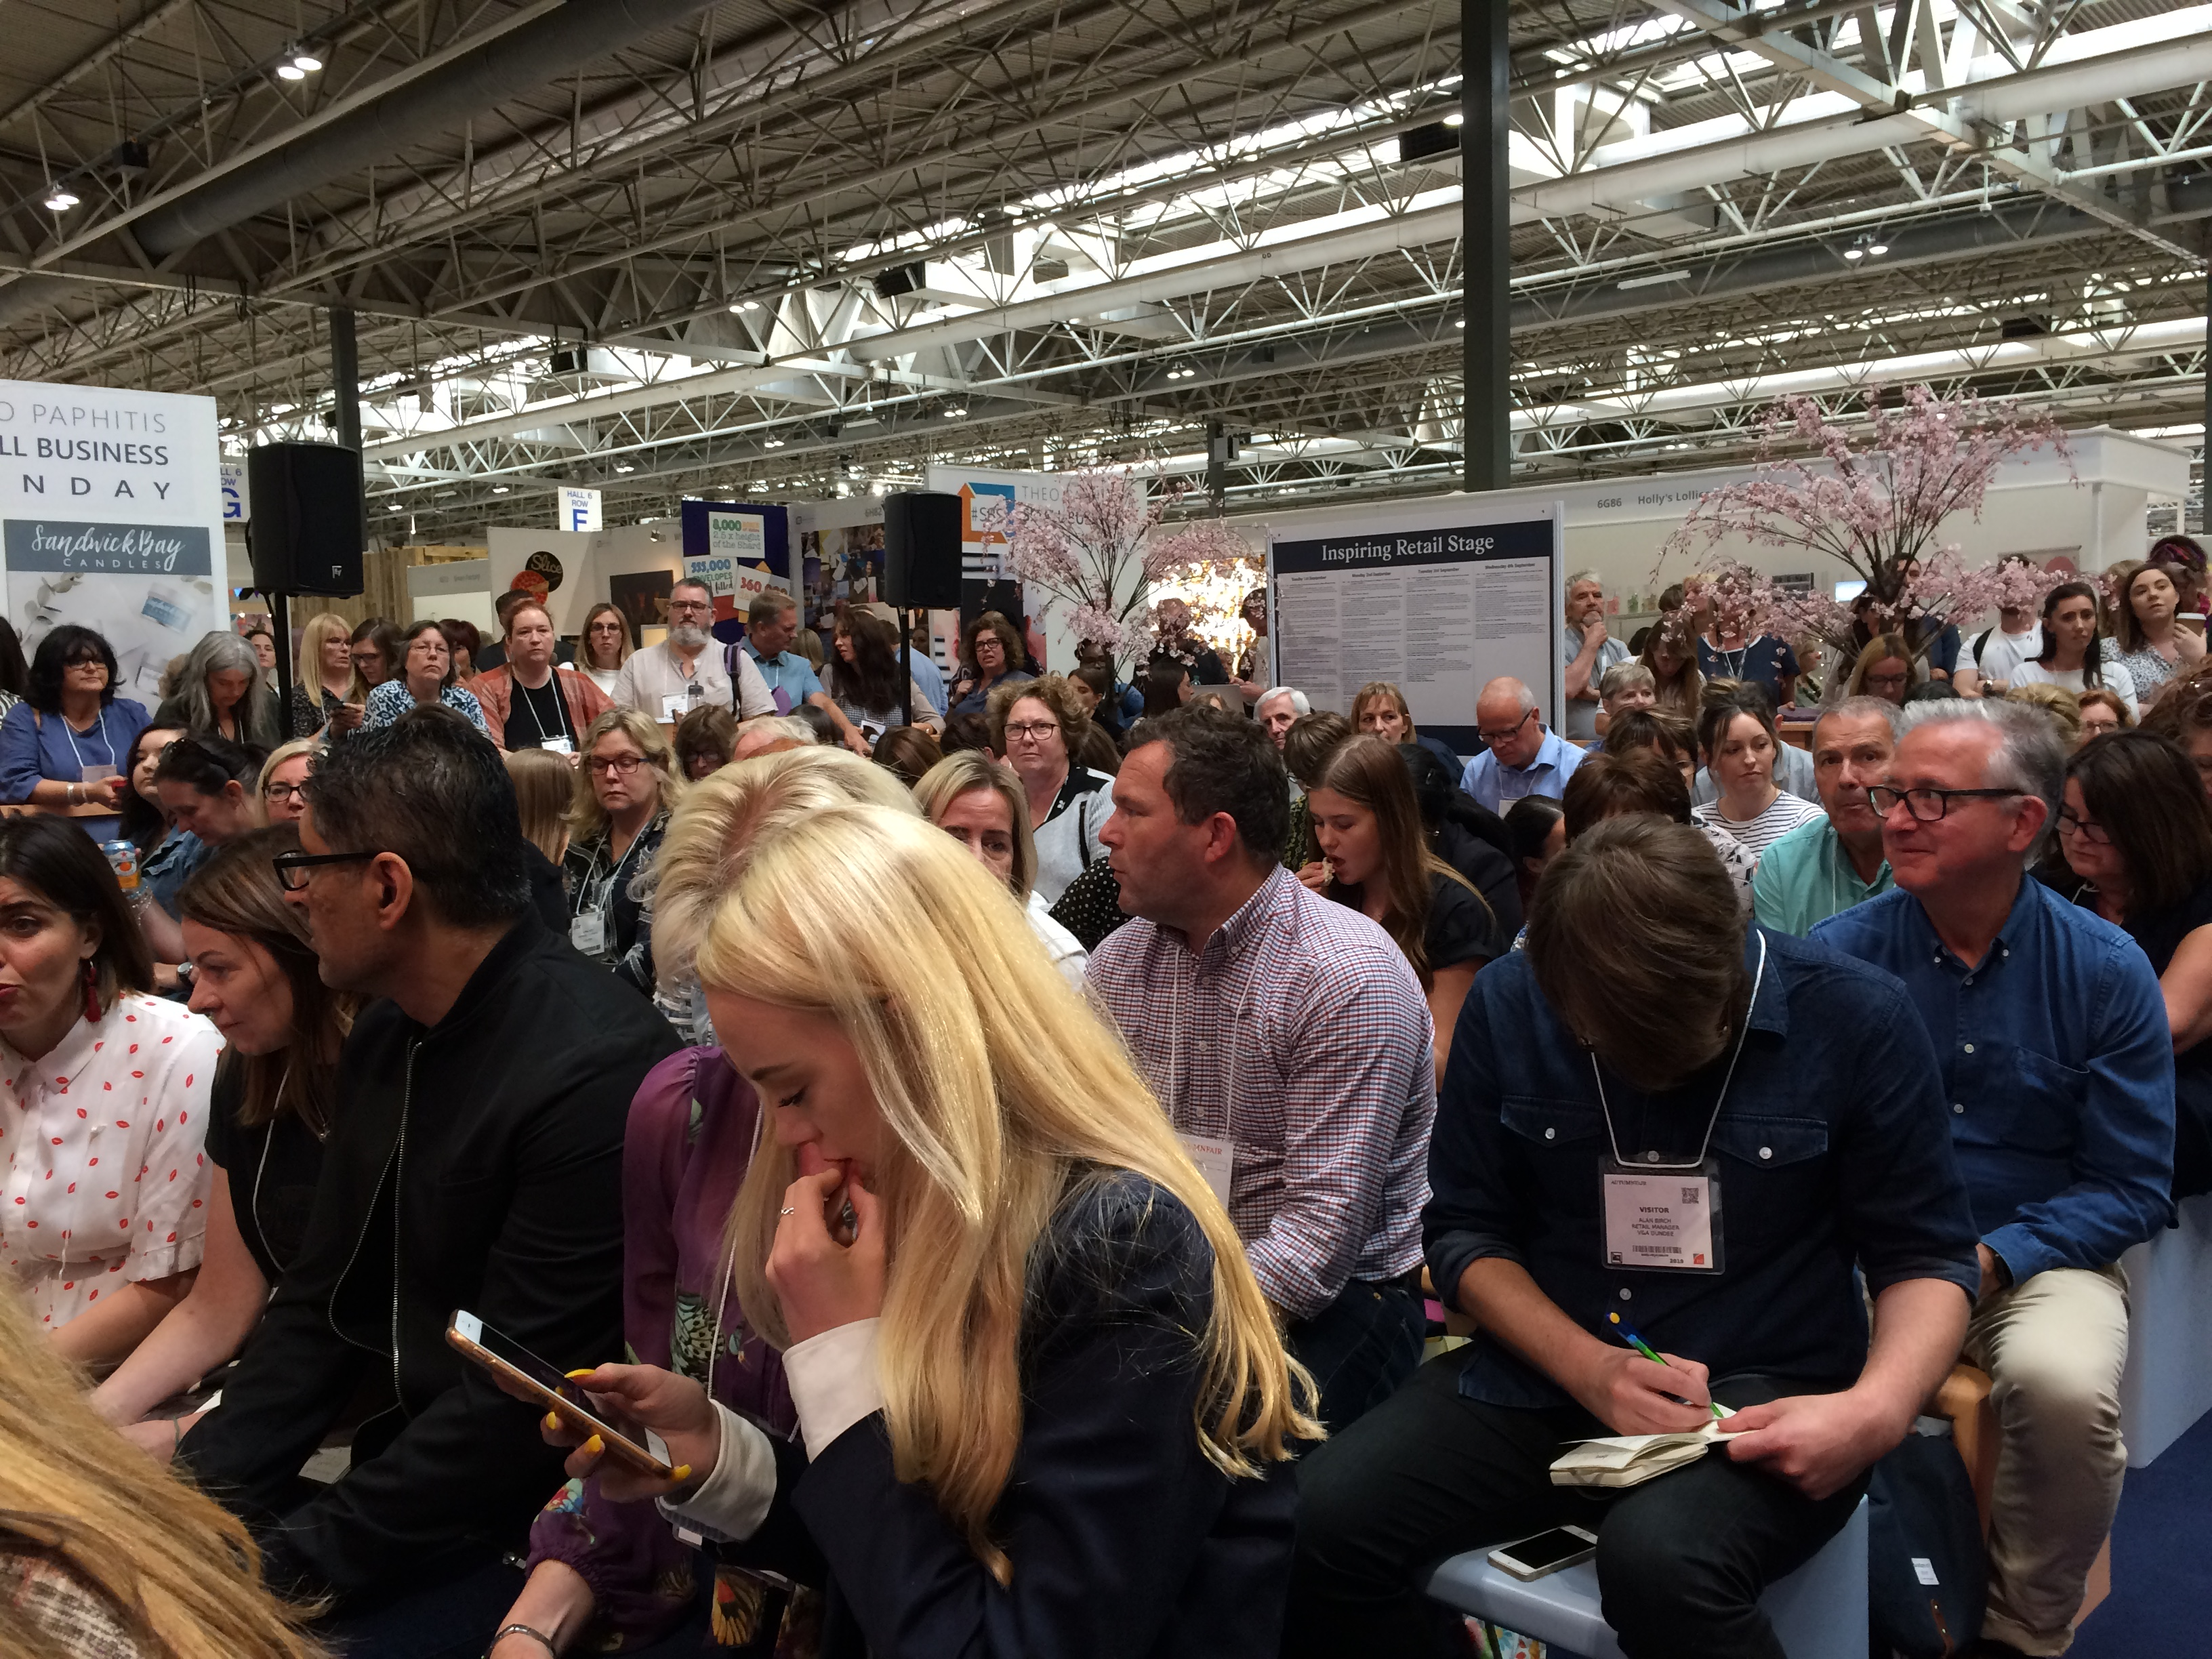 Above: It was a packed house with retailers and exhibitors crowding in to hear what Mary had to say.